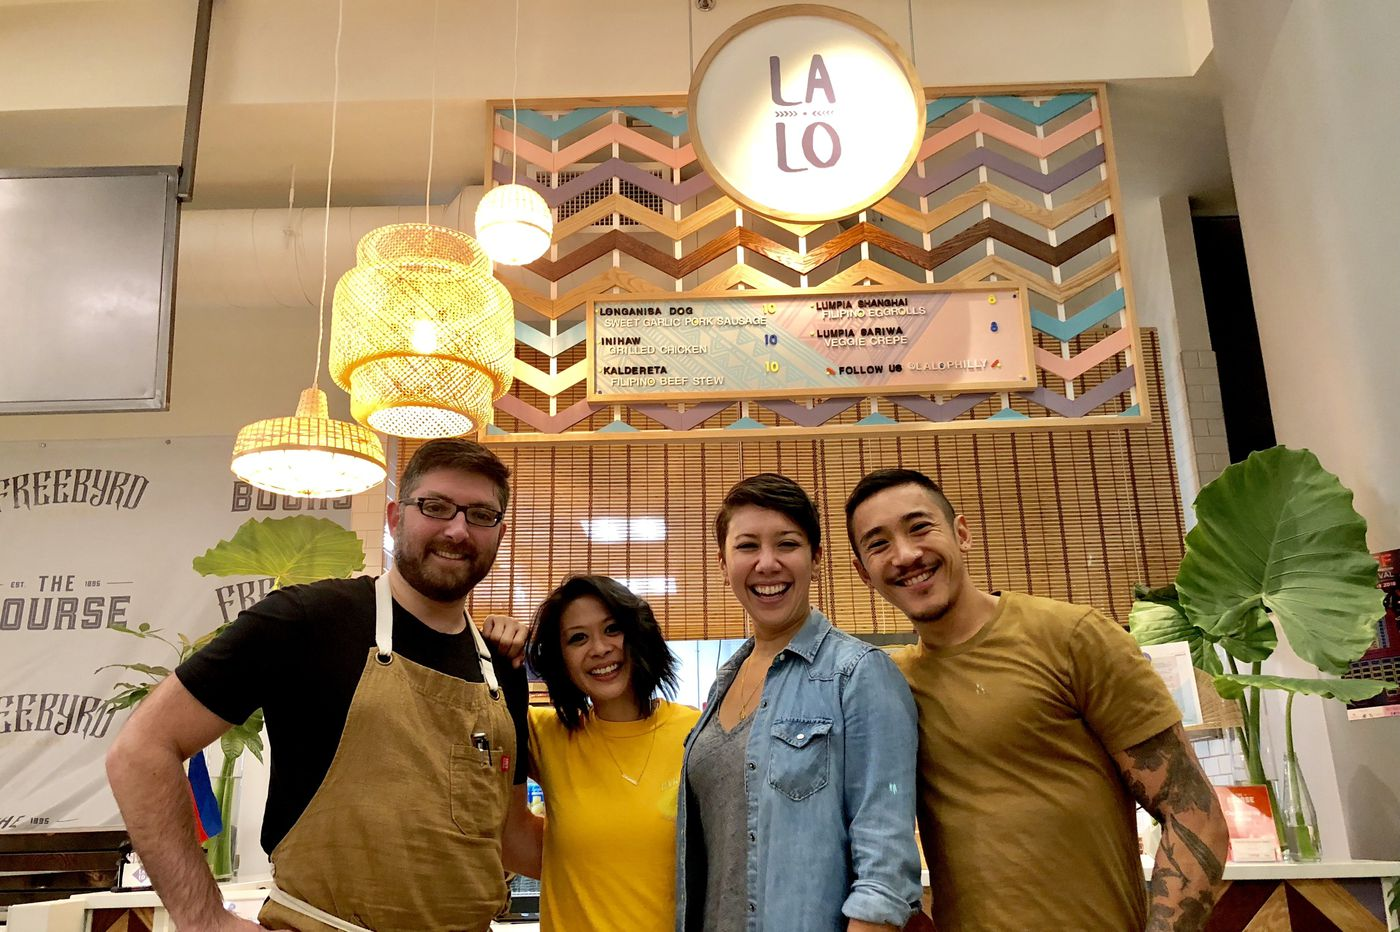 At LALO, a Philly Filipino connection boils down to a group of friends